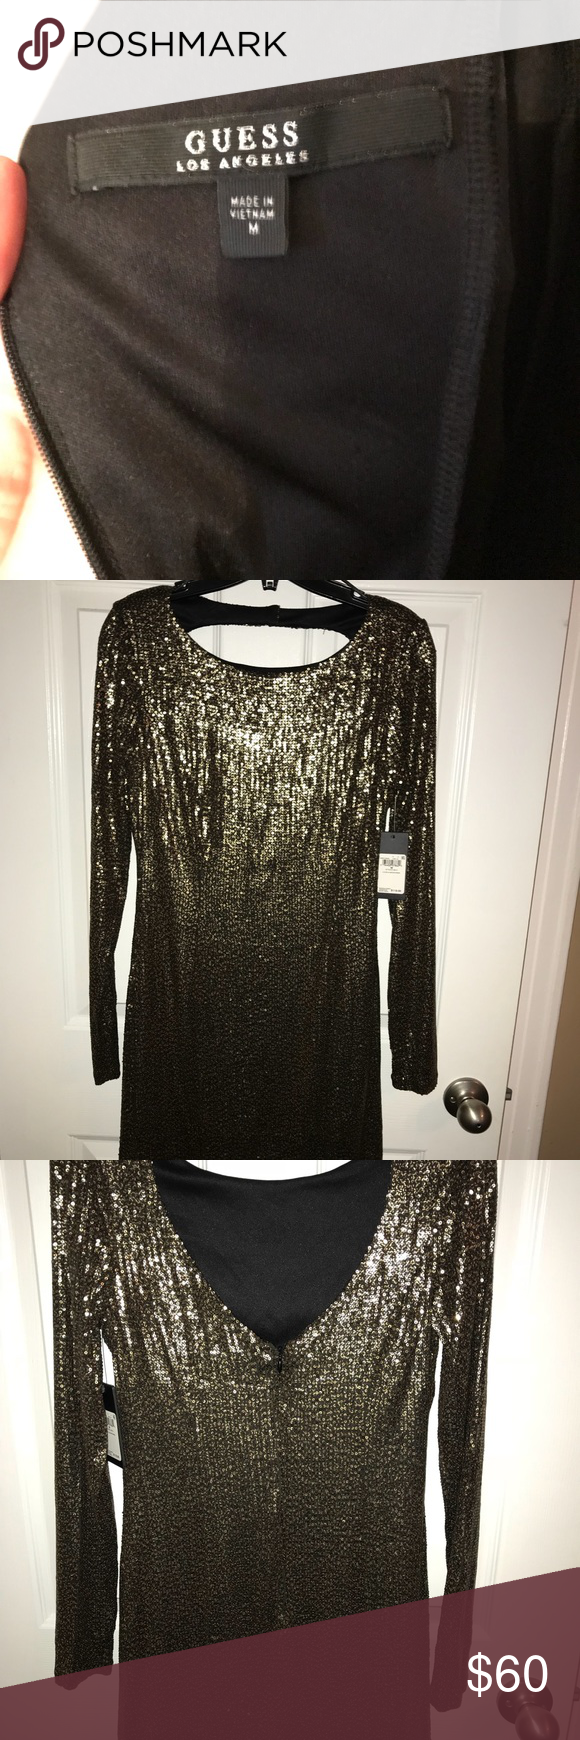 Guess Black Glitter Long Sleeve Blouse